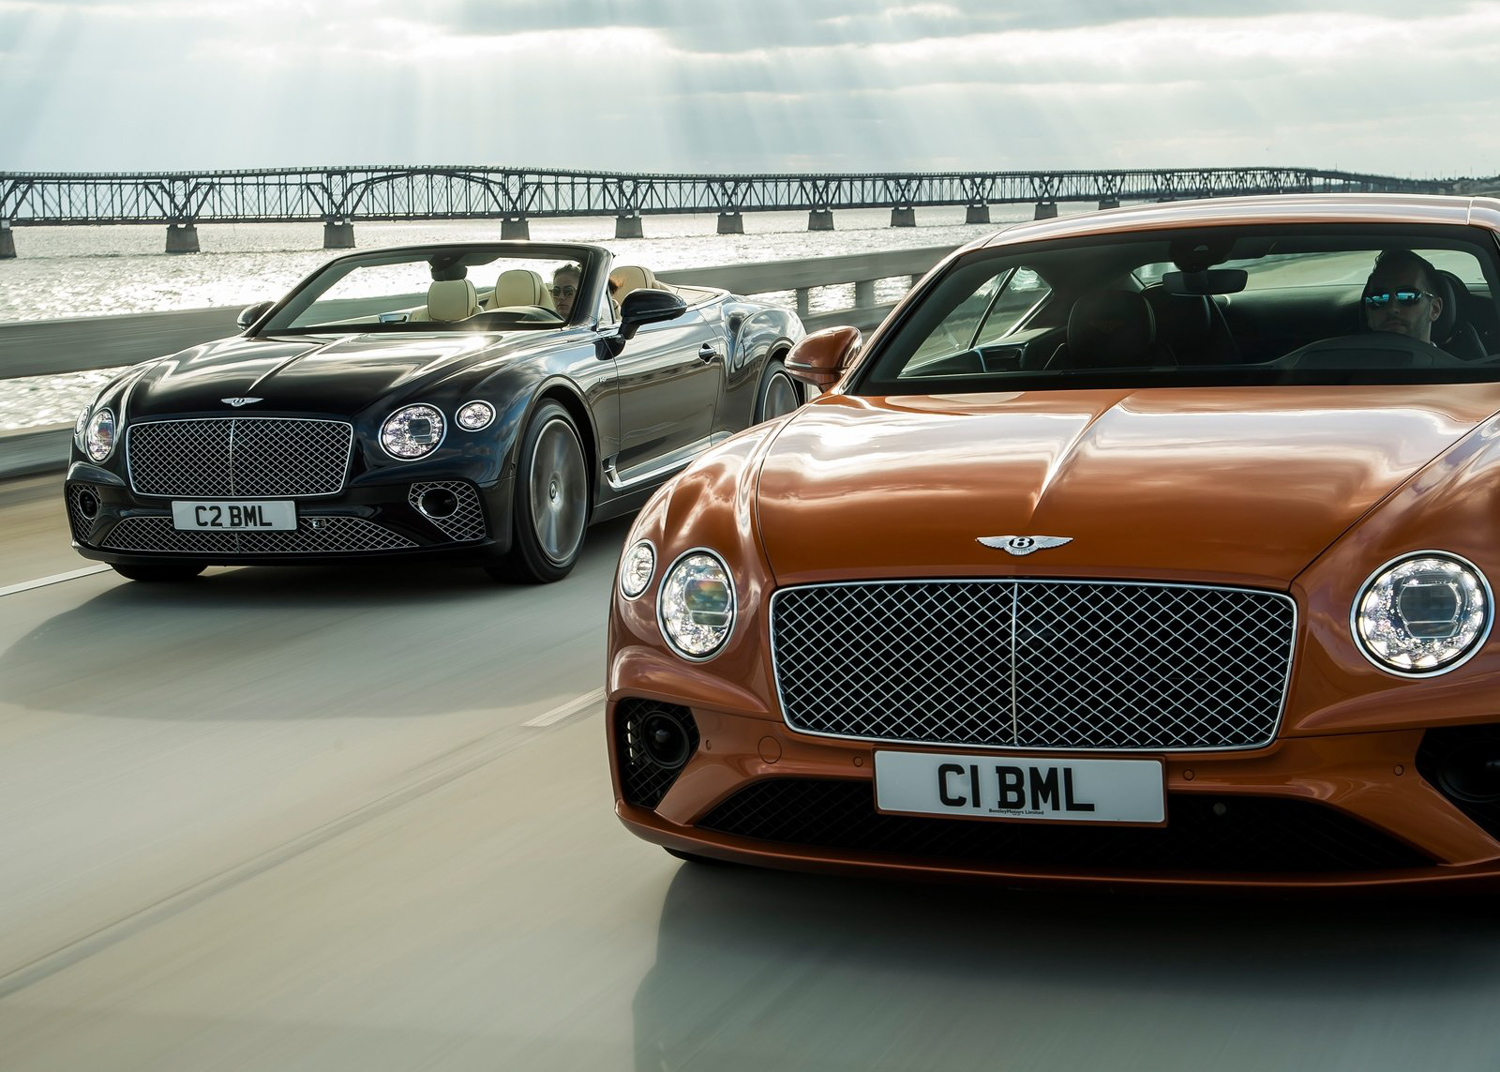 2020 Bentley Continental GT V8 coupe and convertible on bridge